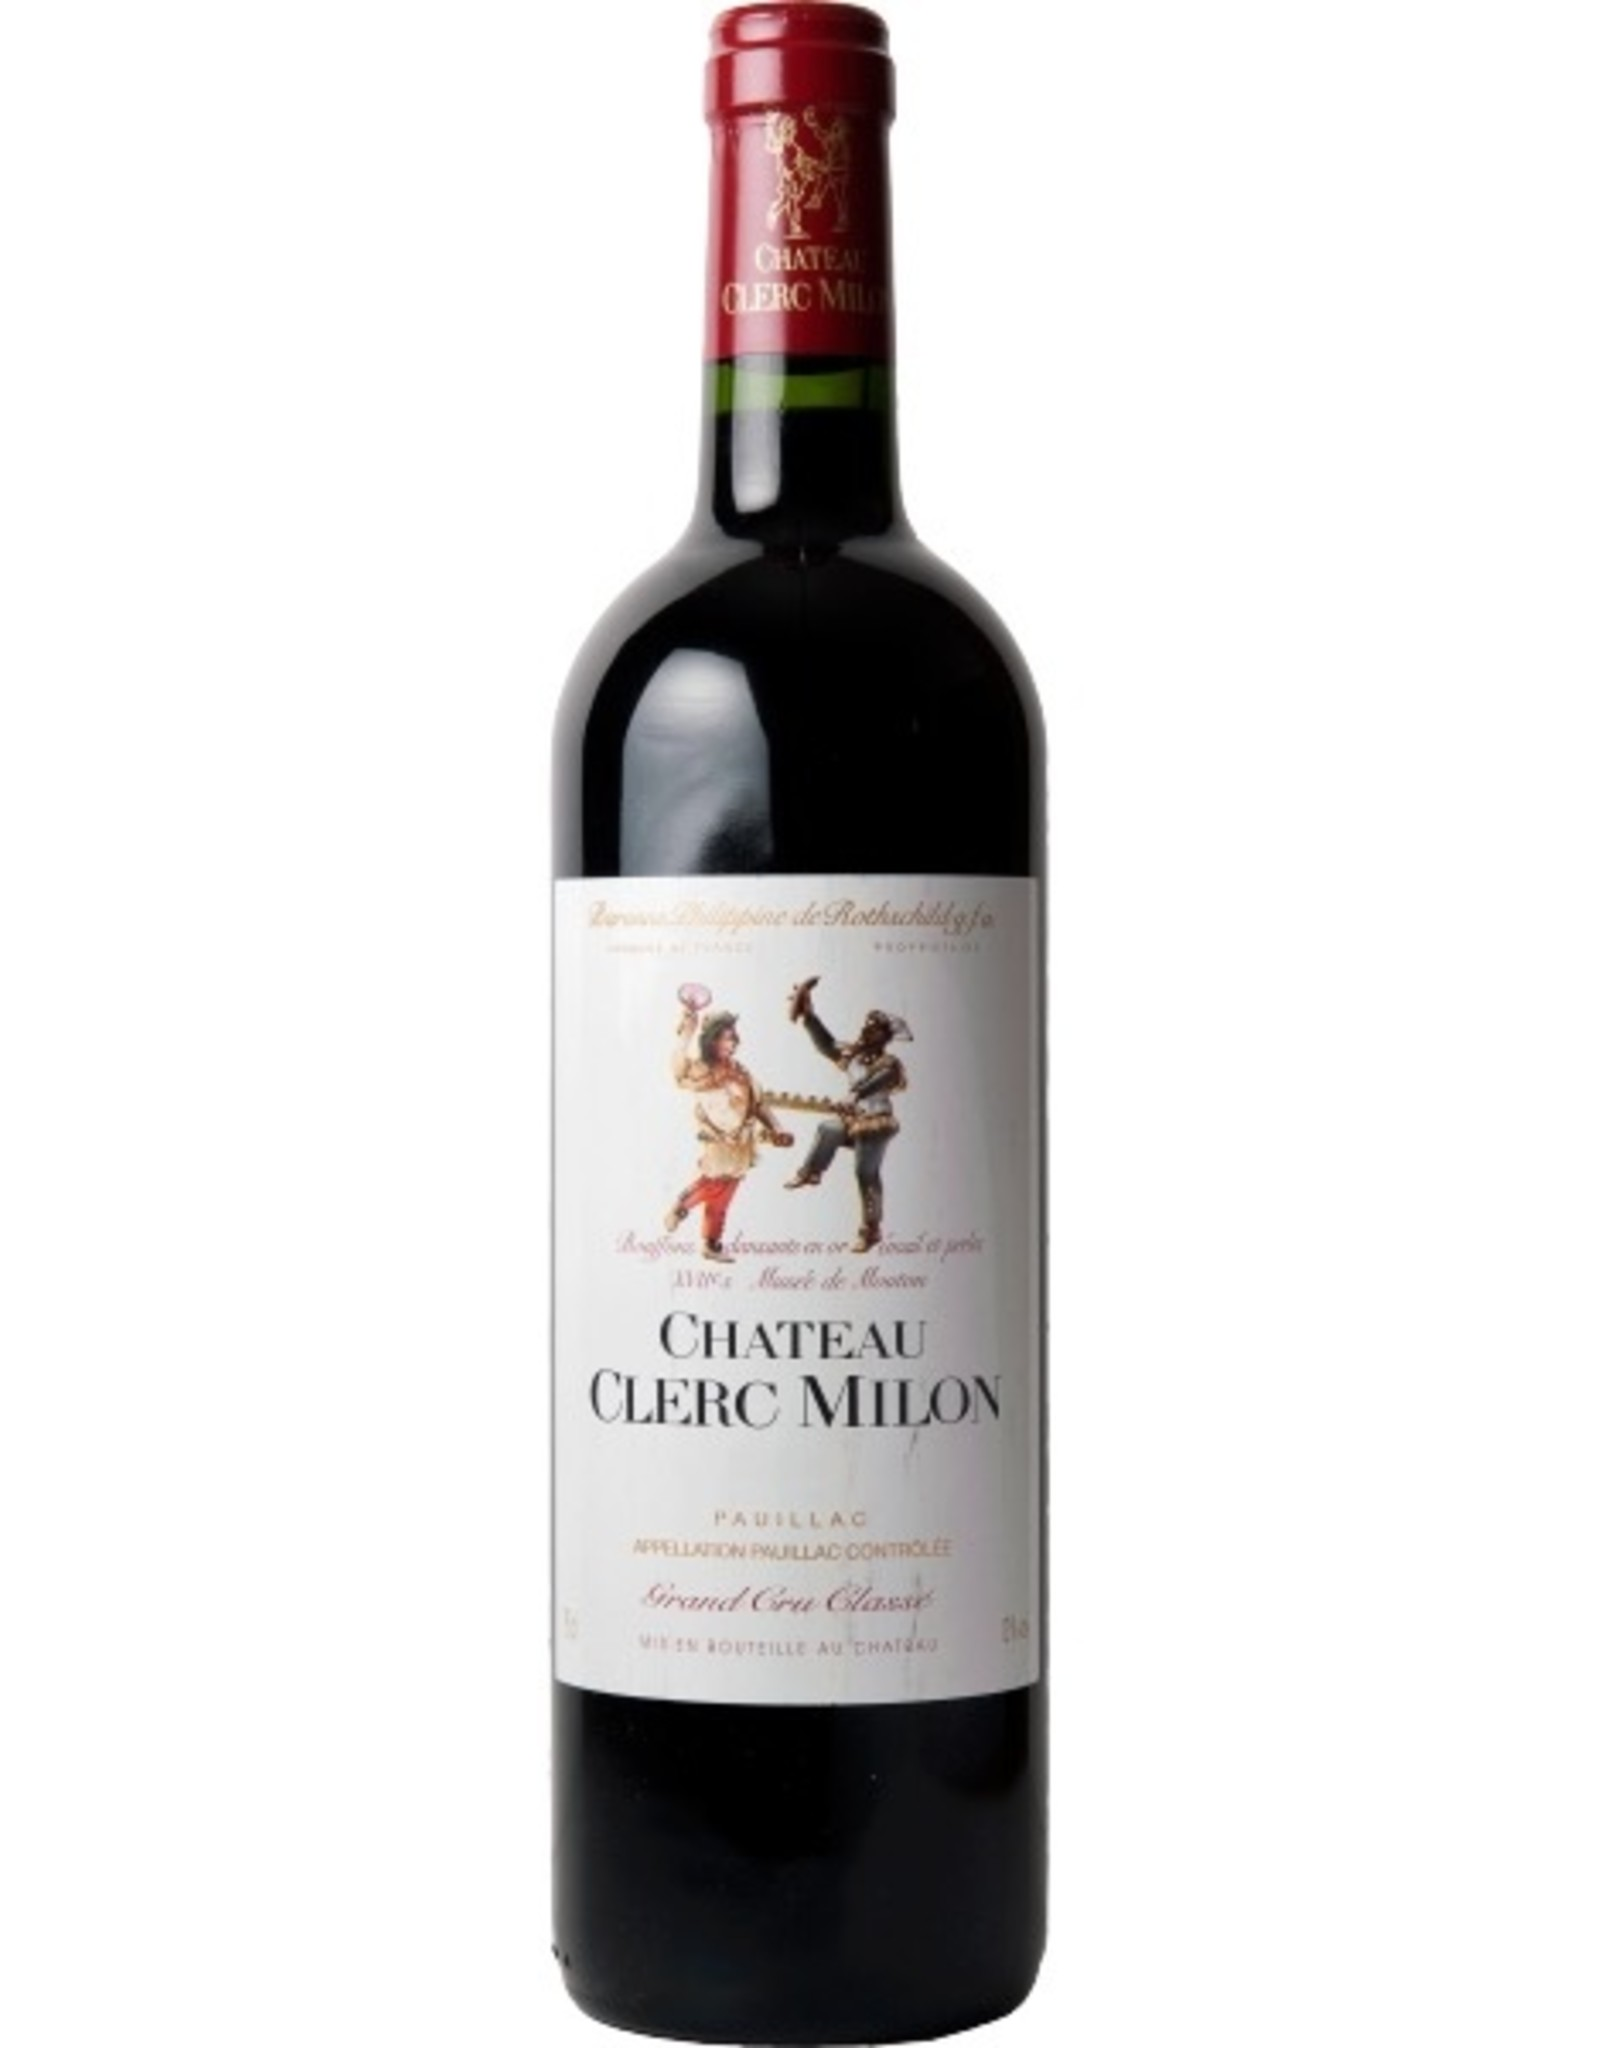 Red Wine 2009, Clerc Milon by Phillipe de Rothchild Grand Cru Classe, Red Bordeaux Blend, Pauillac, Bordeaux, France, 13.5% Alc, CT92, JS95 WE94 WS93 RP92